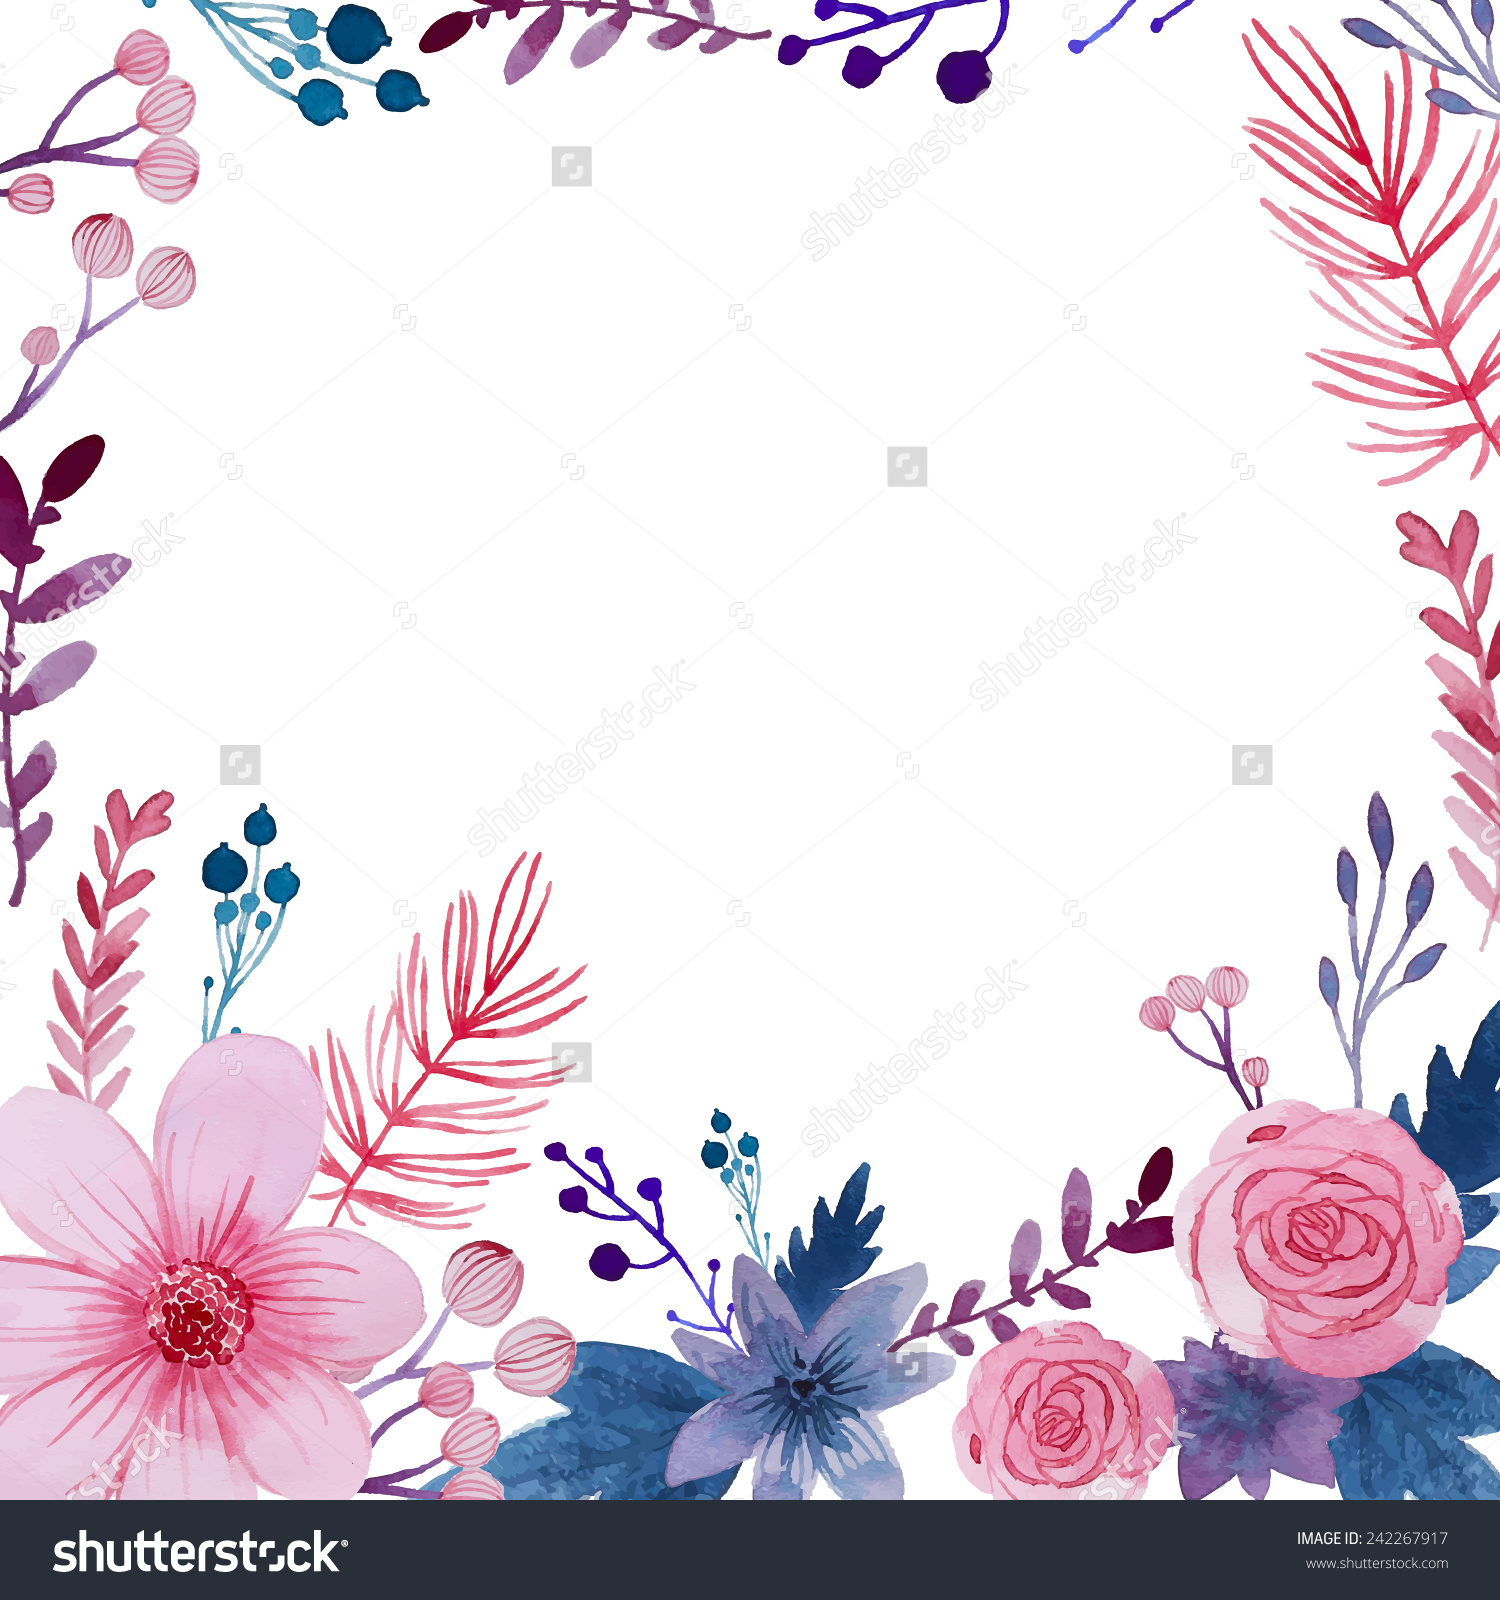 Flower watercolor clipart background picture black and white library Watercolor Floral Background Flowers Plants Frame Stock Vector ... picture black and white library